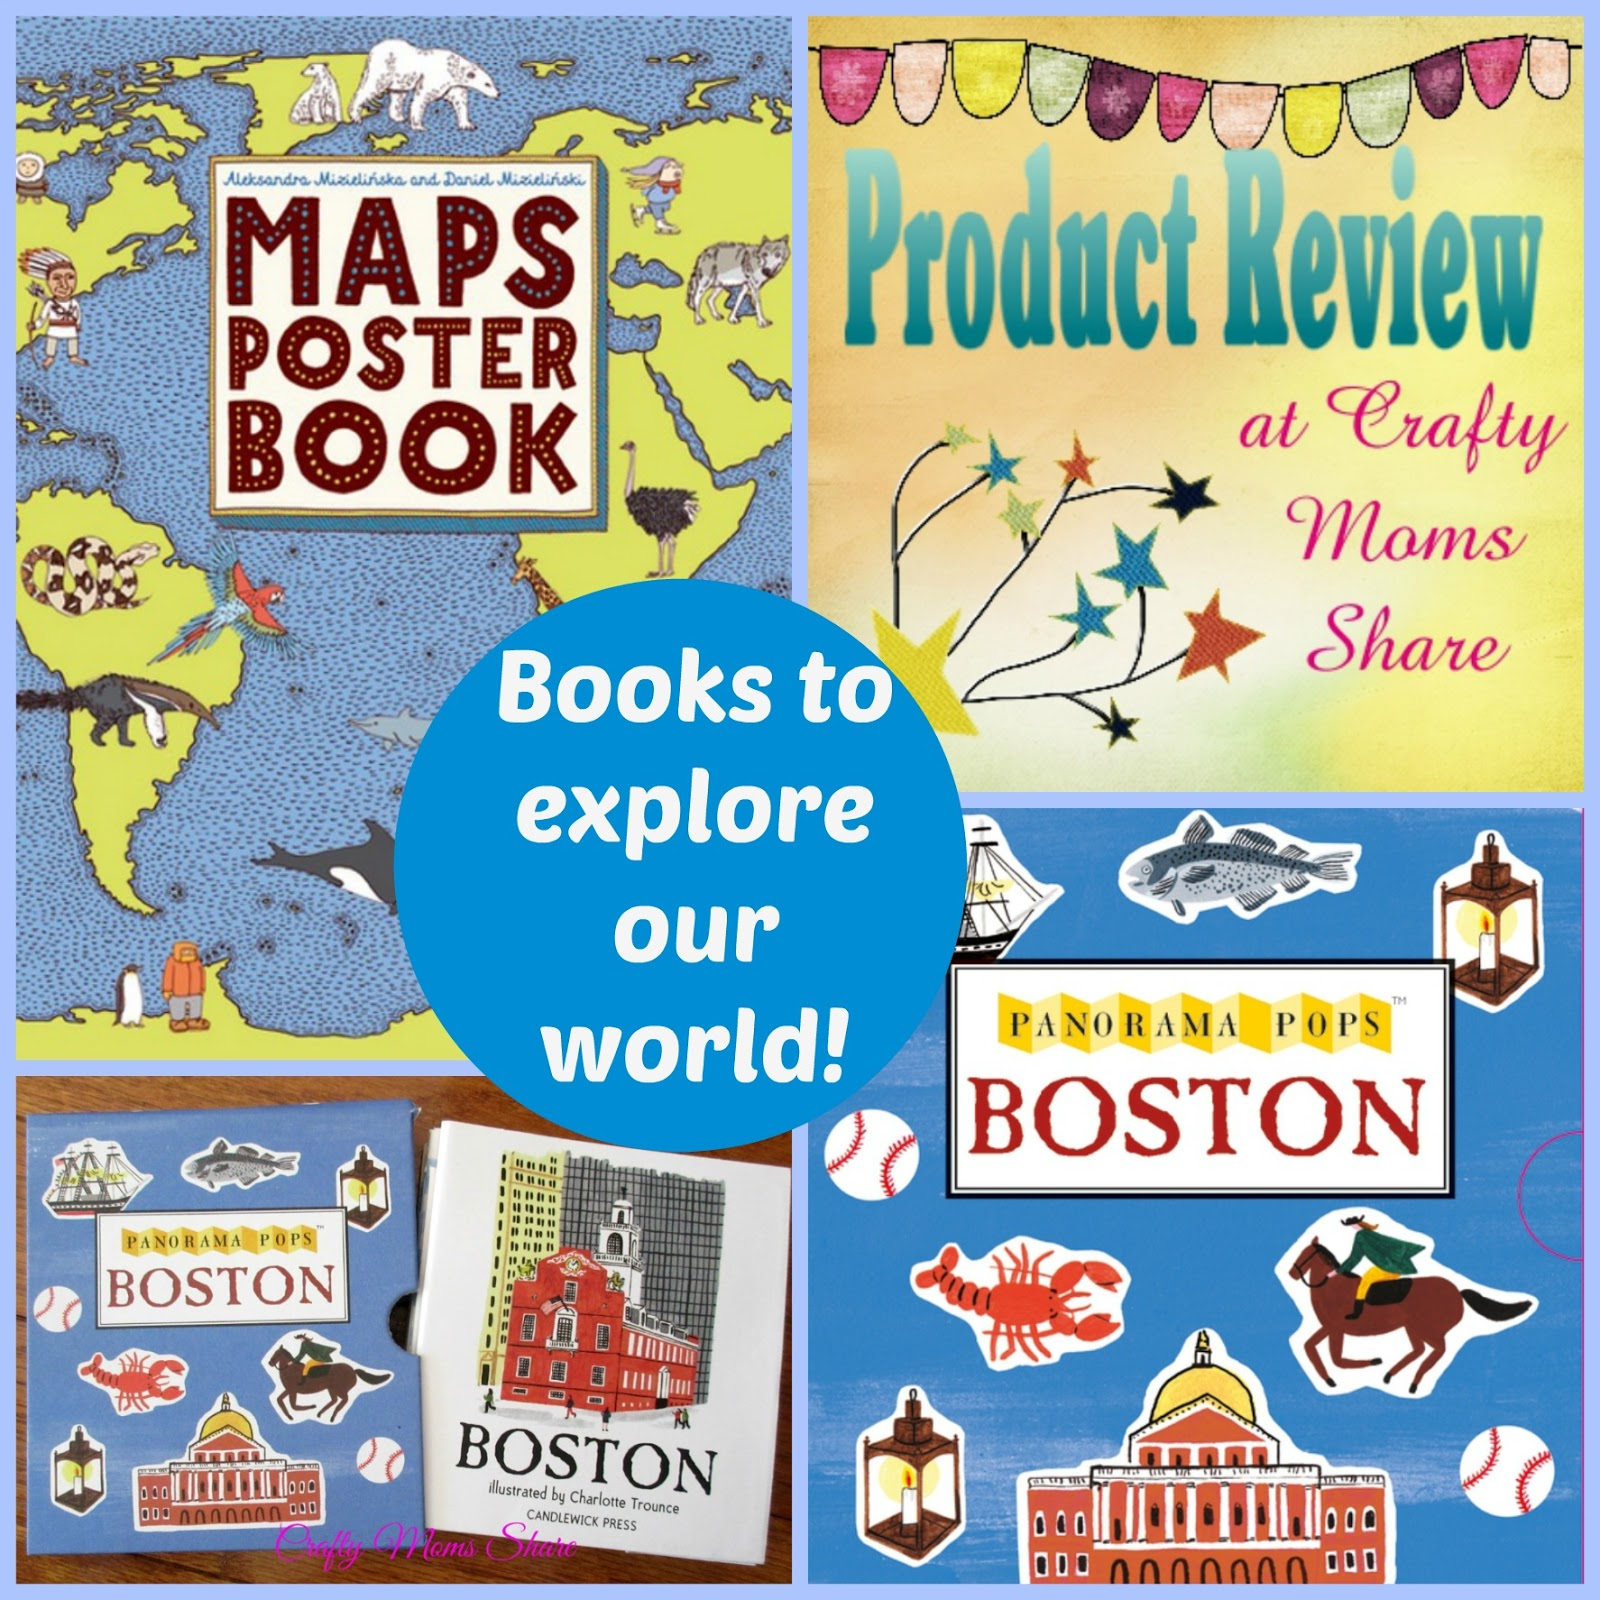 Crafty moms share books to explore our world maps poster book books to explore our world maps poster book and panorama pops boston book reviews gumiabroncs Gallery